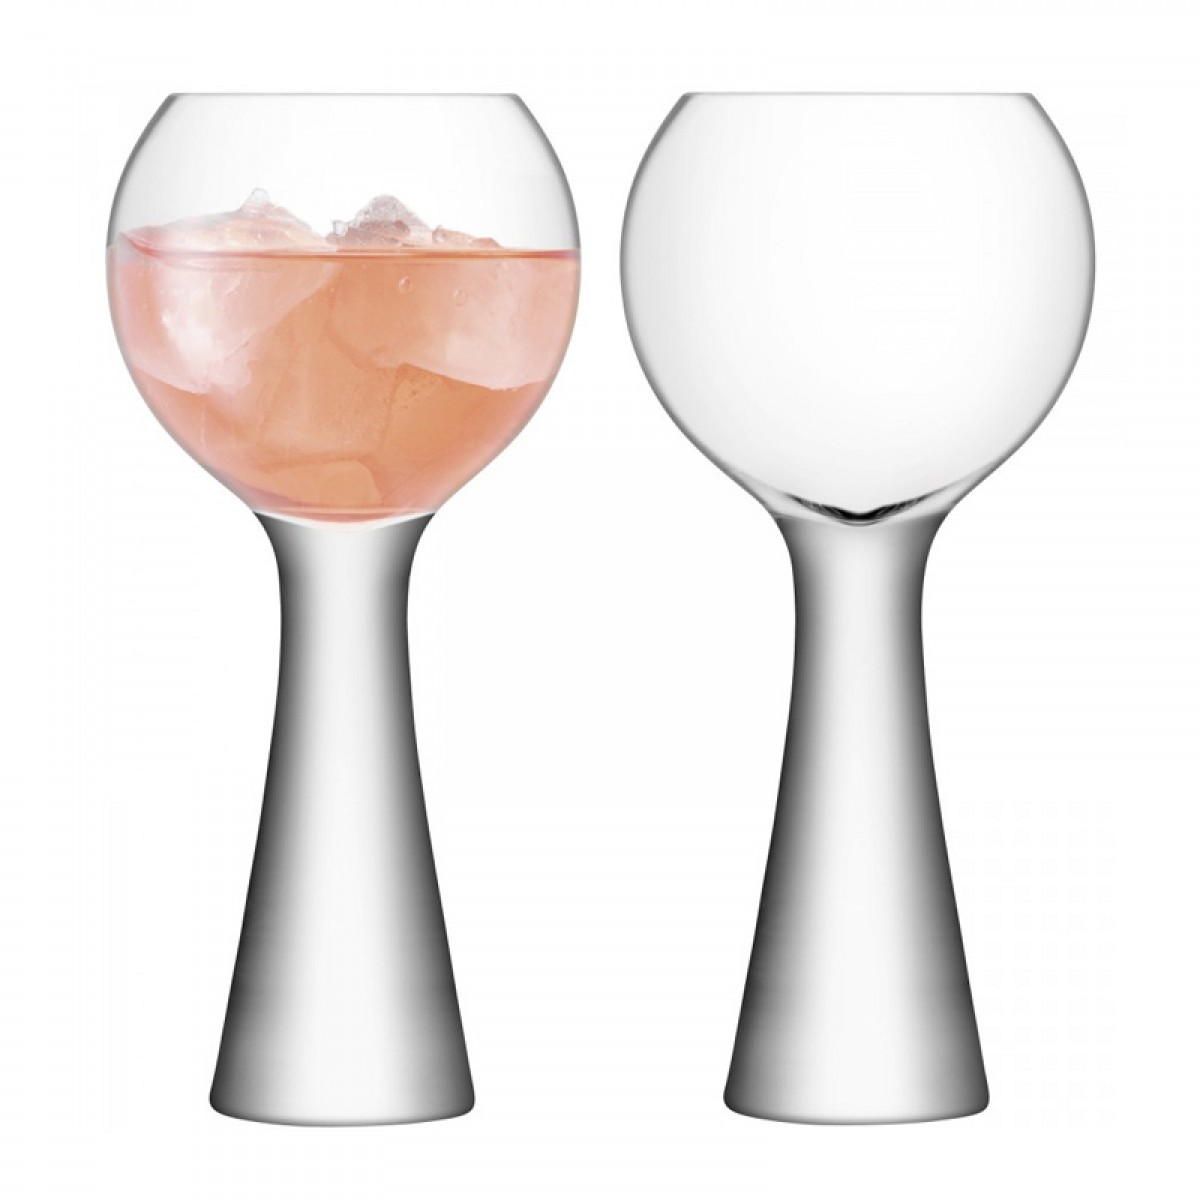 lsa moya champagne flutes  set of   modern champagne glasses - lsa moya wine balloon glasses  set of   wine goblet pair